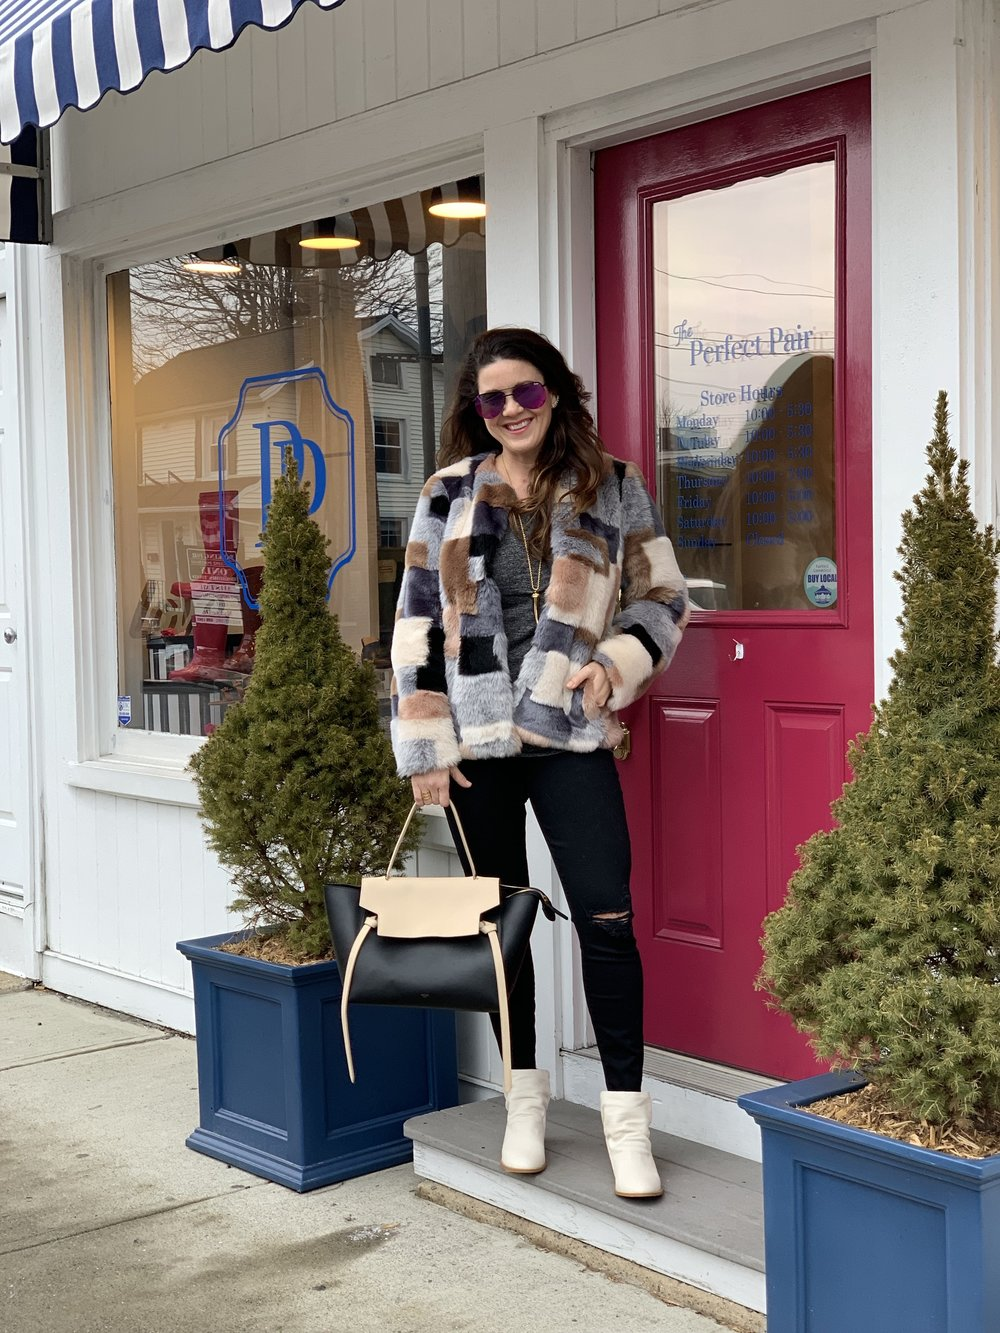 Mollie Milano   Persona Stylist & Wellness Advocate (Fairfield, CT)